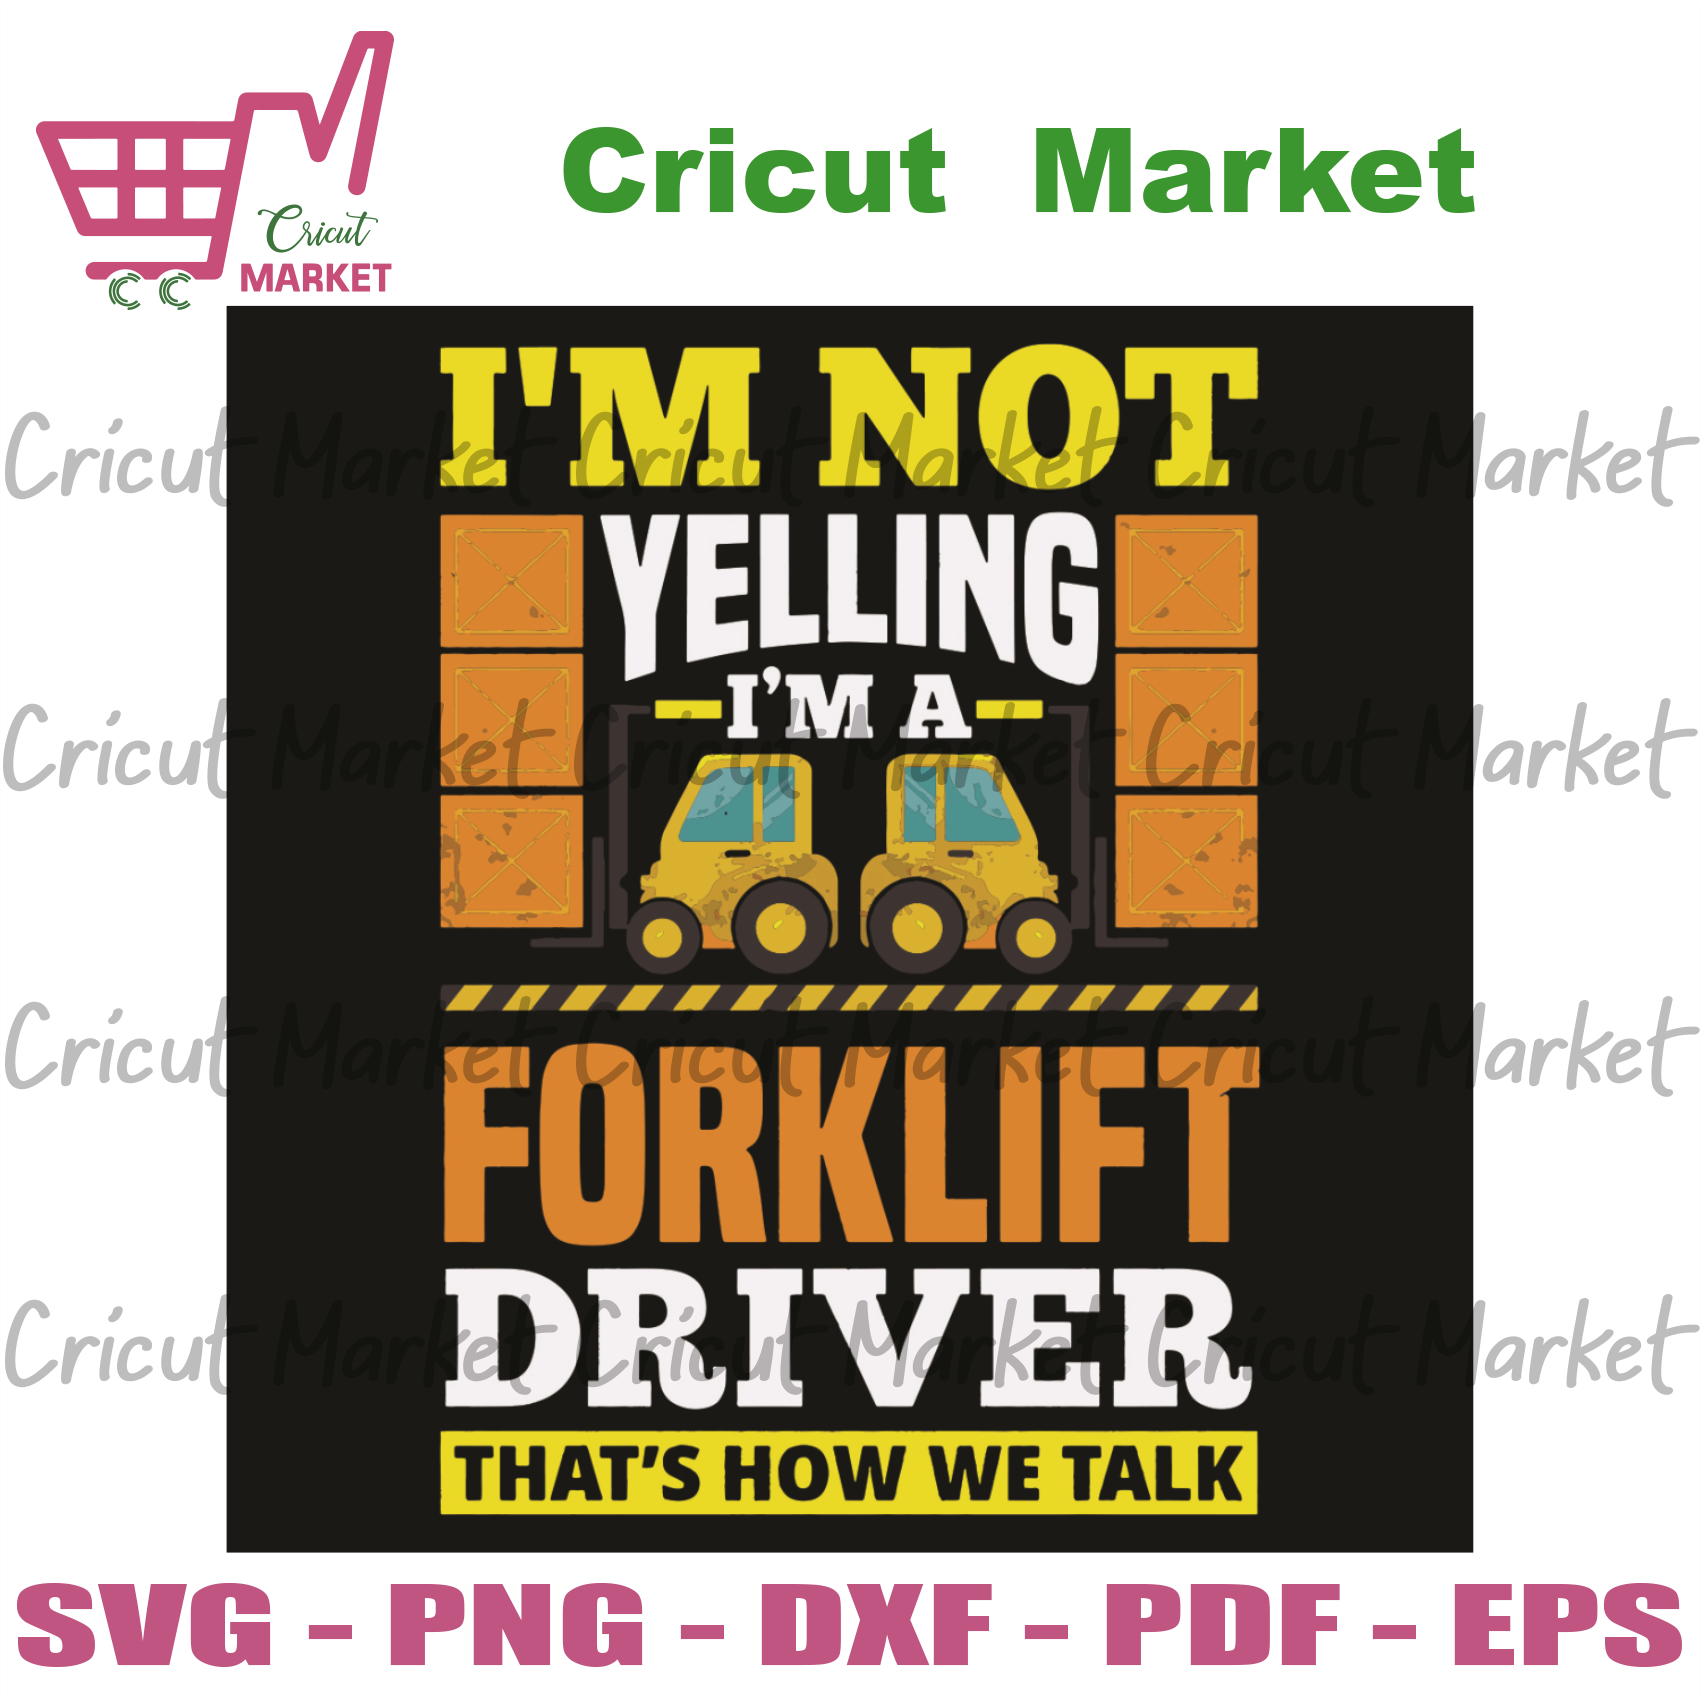 I Am Not Yelling I Am A Forklift Driver That Is How We Talk Svg, Trending Svg, Forklift Svg, Forklift Driver Svg, Yelling Svg, Transport Svg, Forklift Gifts Svg, Transport Gifts Svg, Forklift